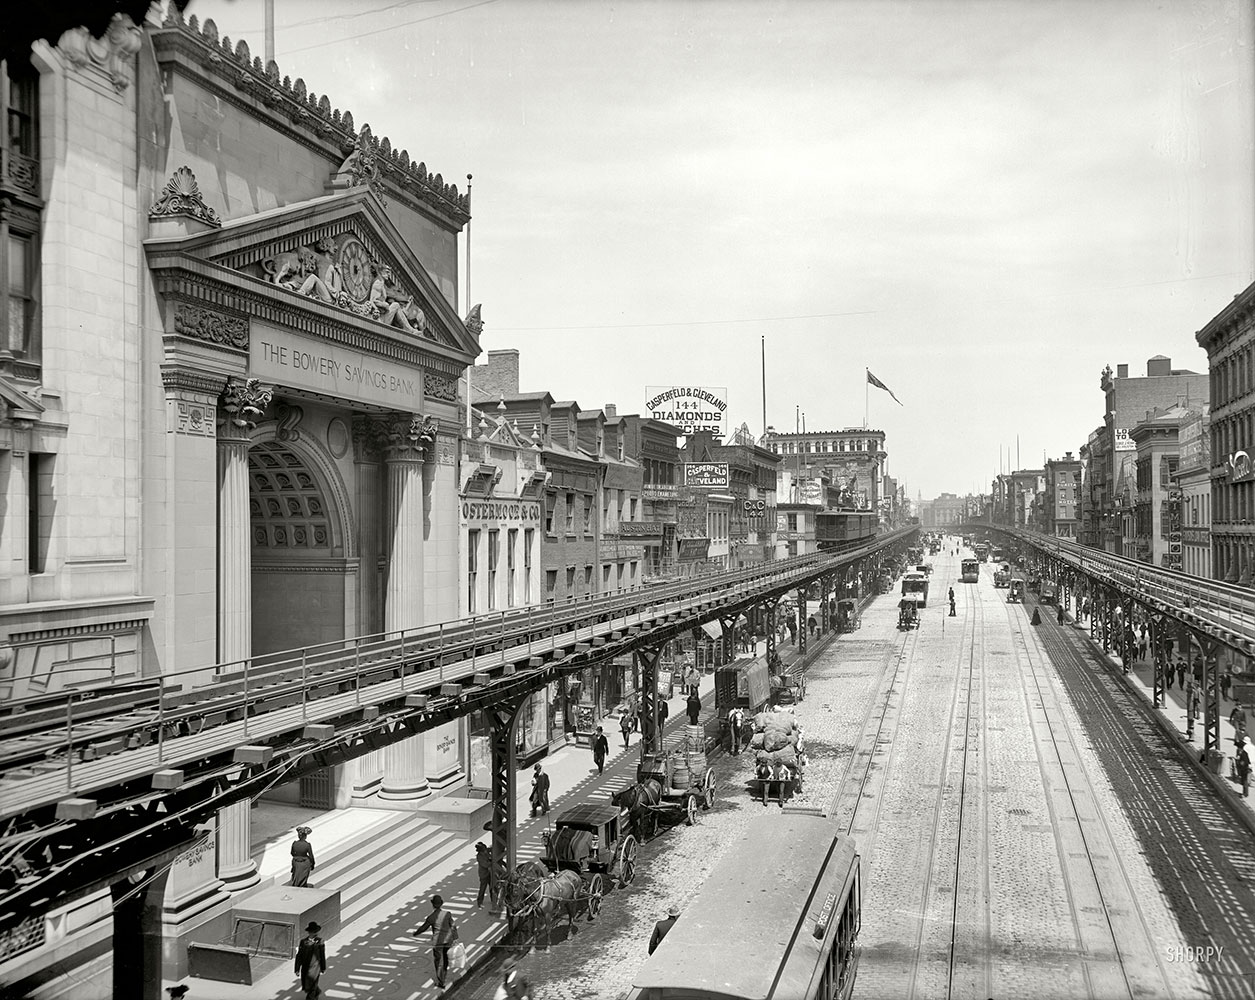 View of the bank on the Bowery in 1905